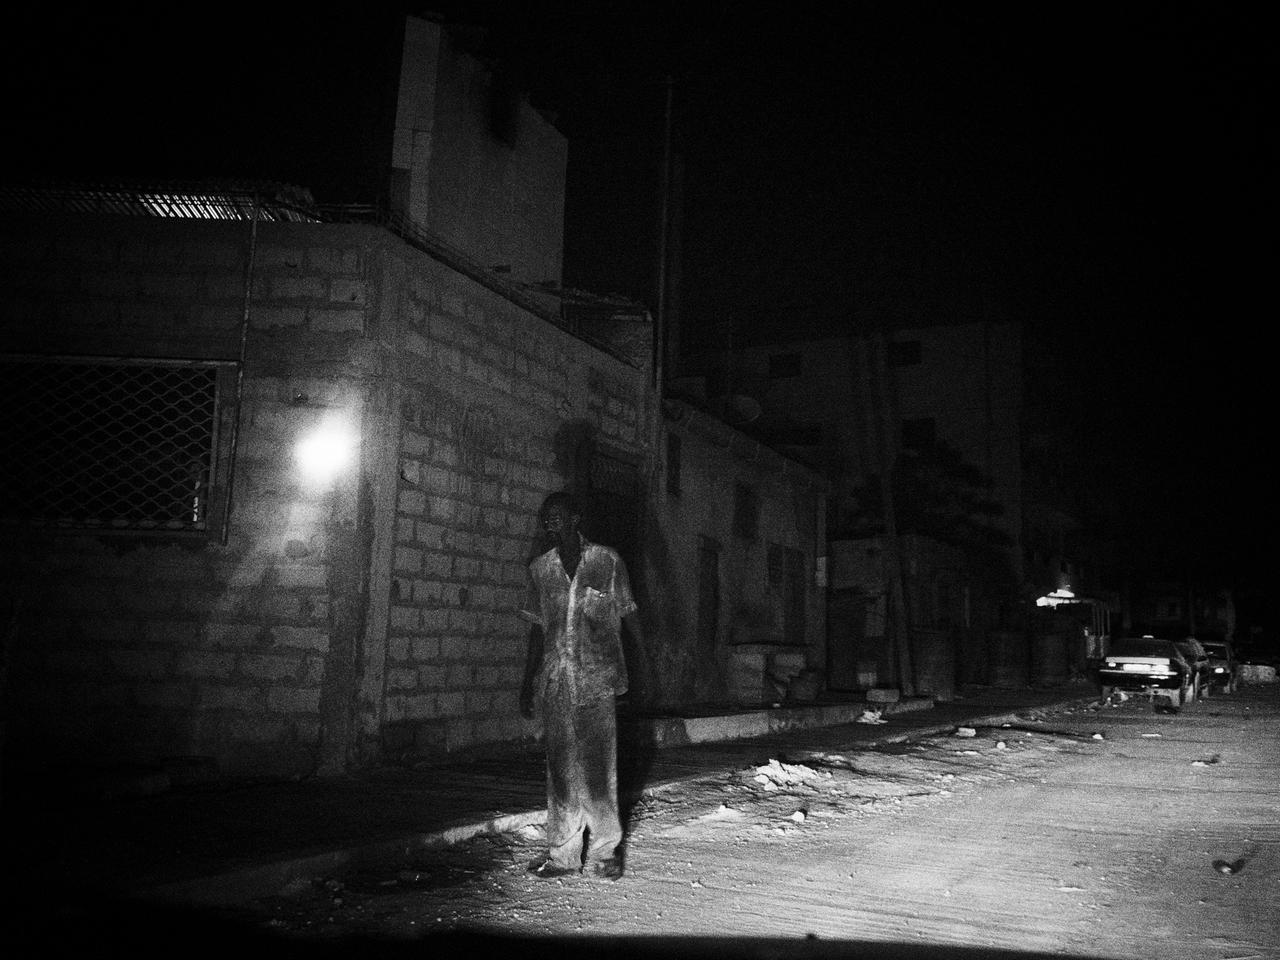 A dark alley in Dakar lit by the high beams of a passing car, near the house of the marabout.